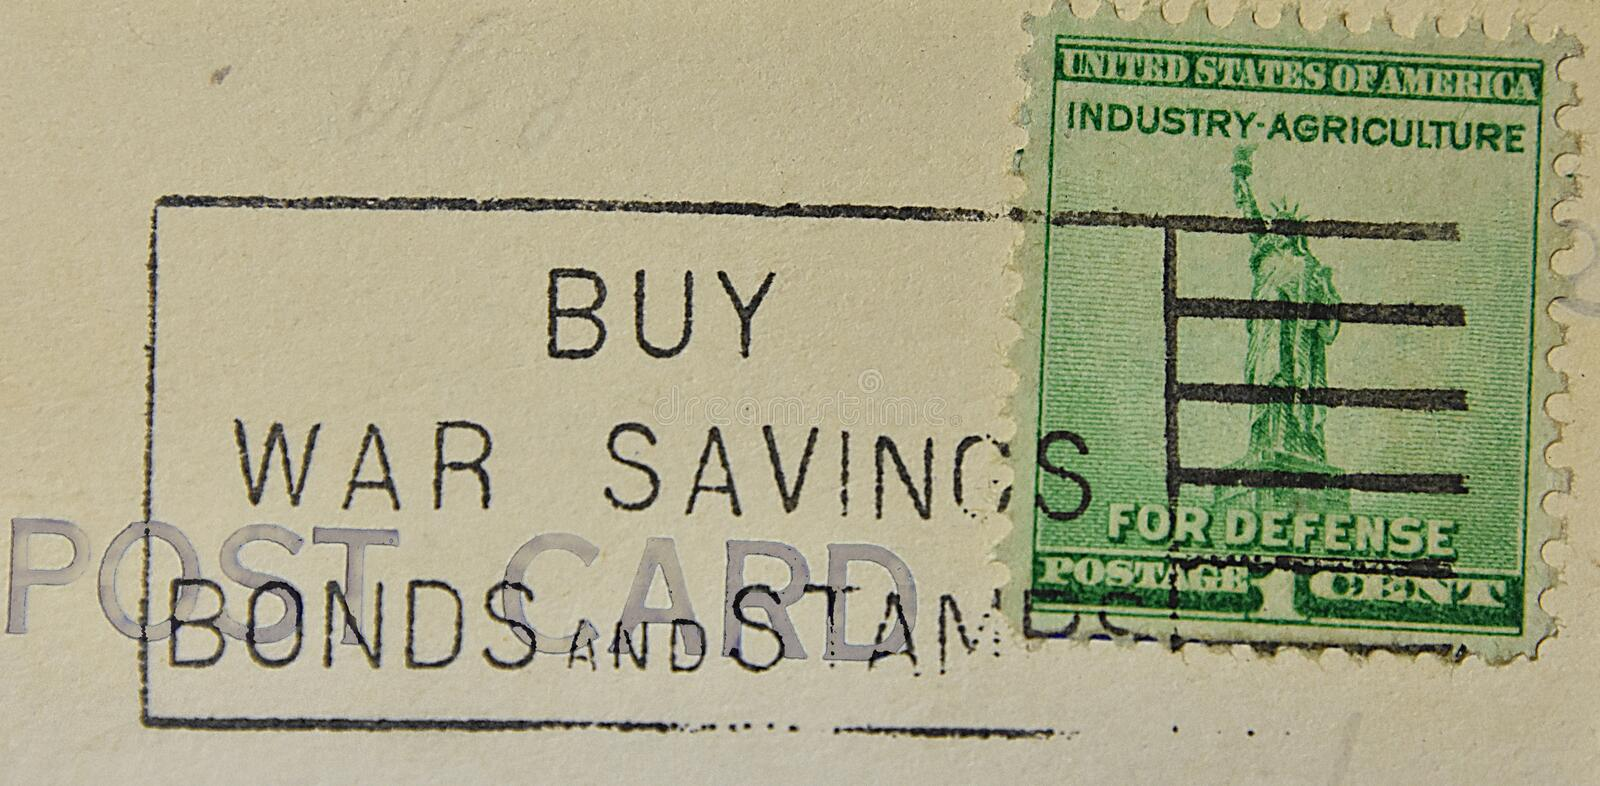 War Bond American Postmark Industry Agriculture for Defense. A postcard cancellation from World War II WWII urging Americans to buy war savings bonds and stamps royalty free stock images